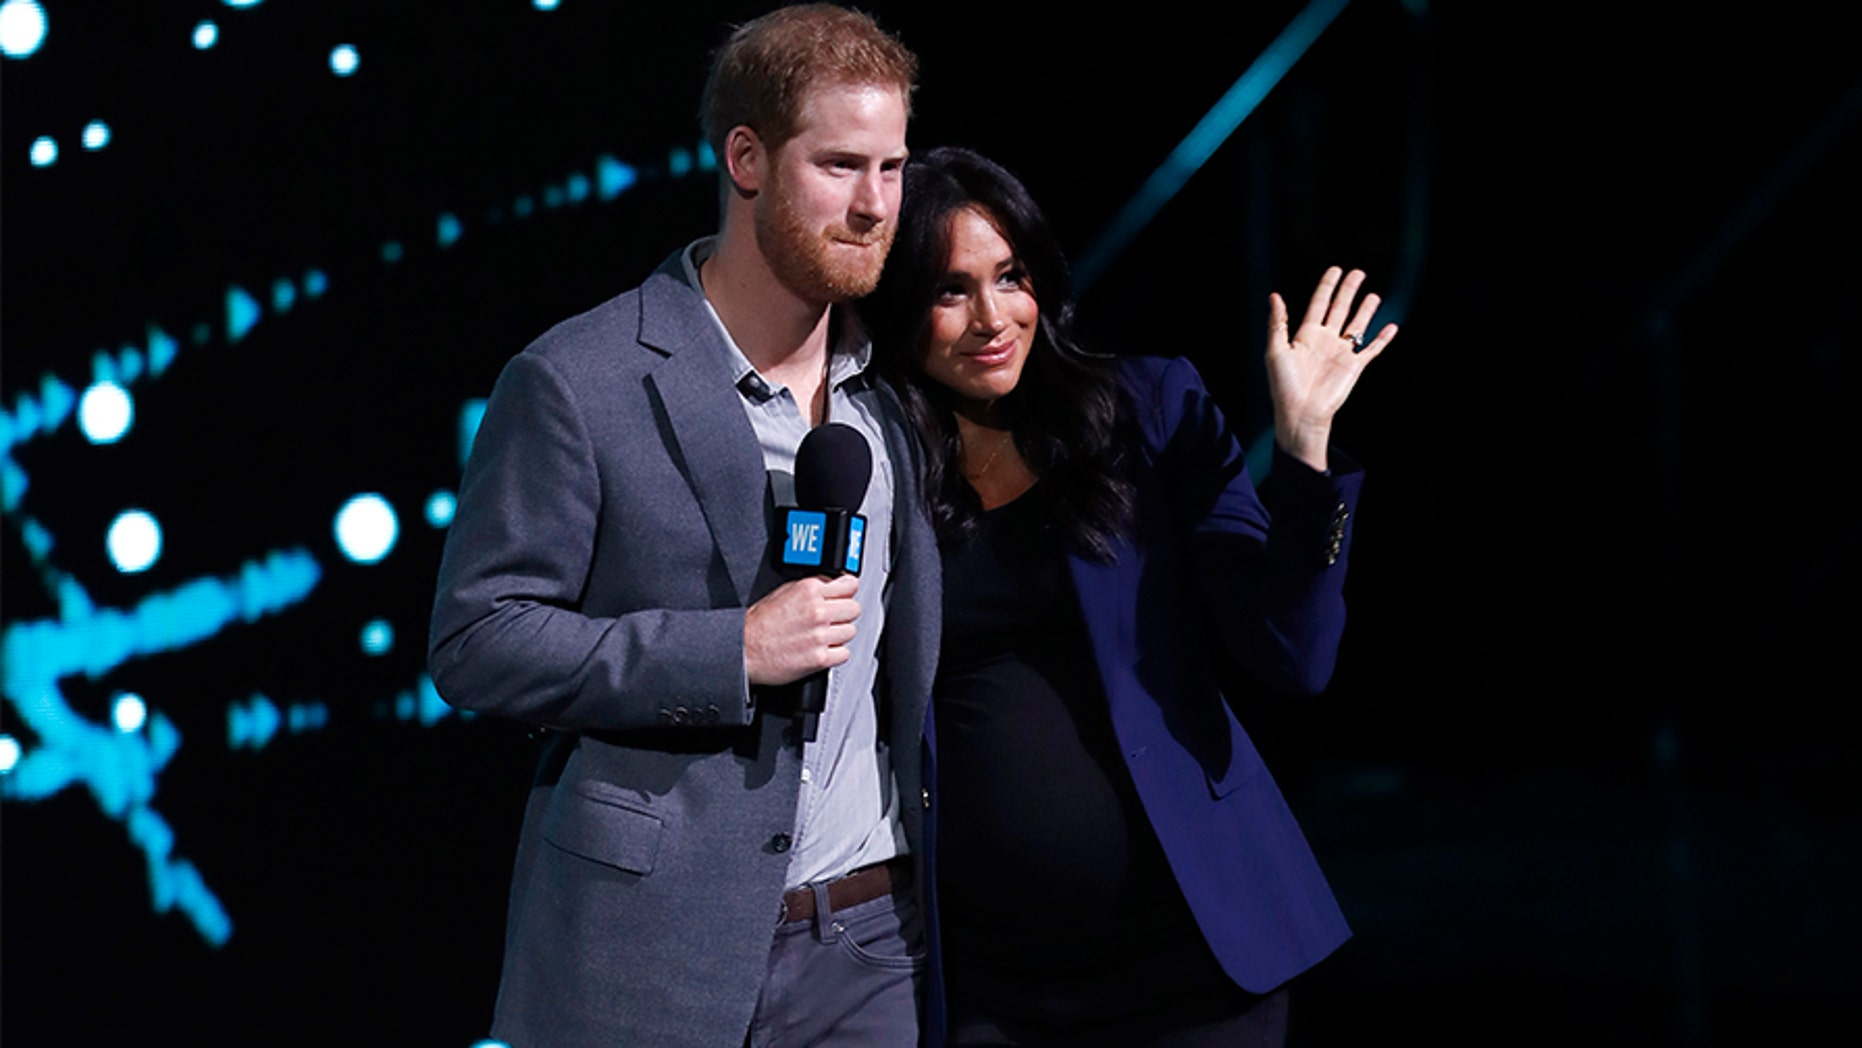 Meghan Markle WE Day outfit: Details